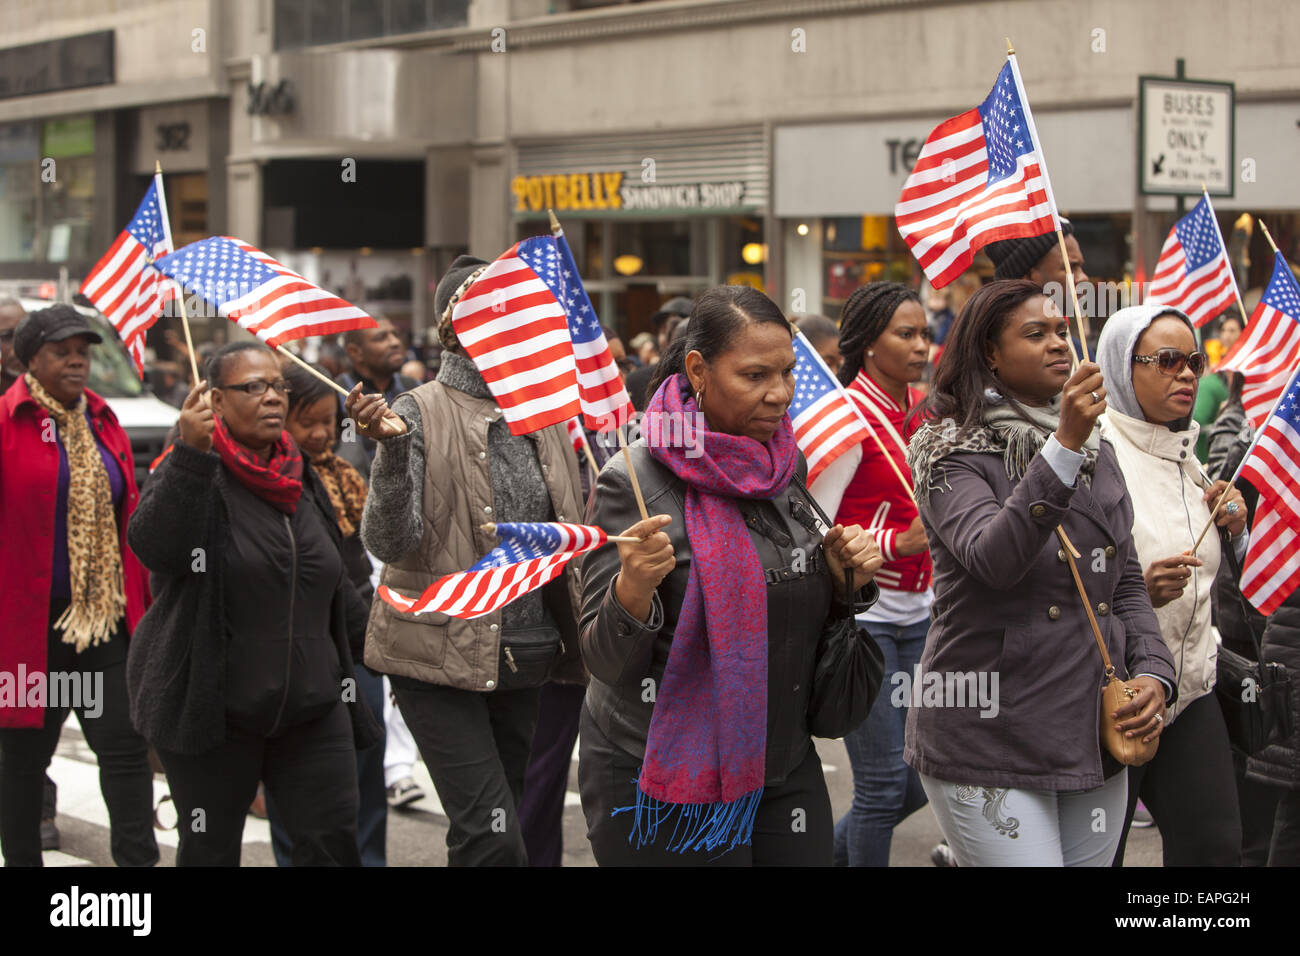 Veterans Day Parade, 5th Ave., New York City. - Stock Image